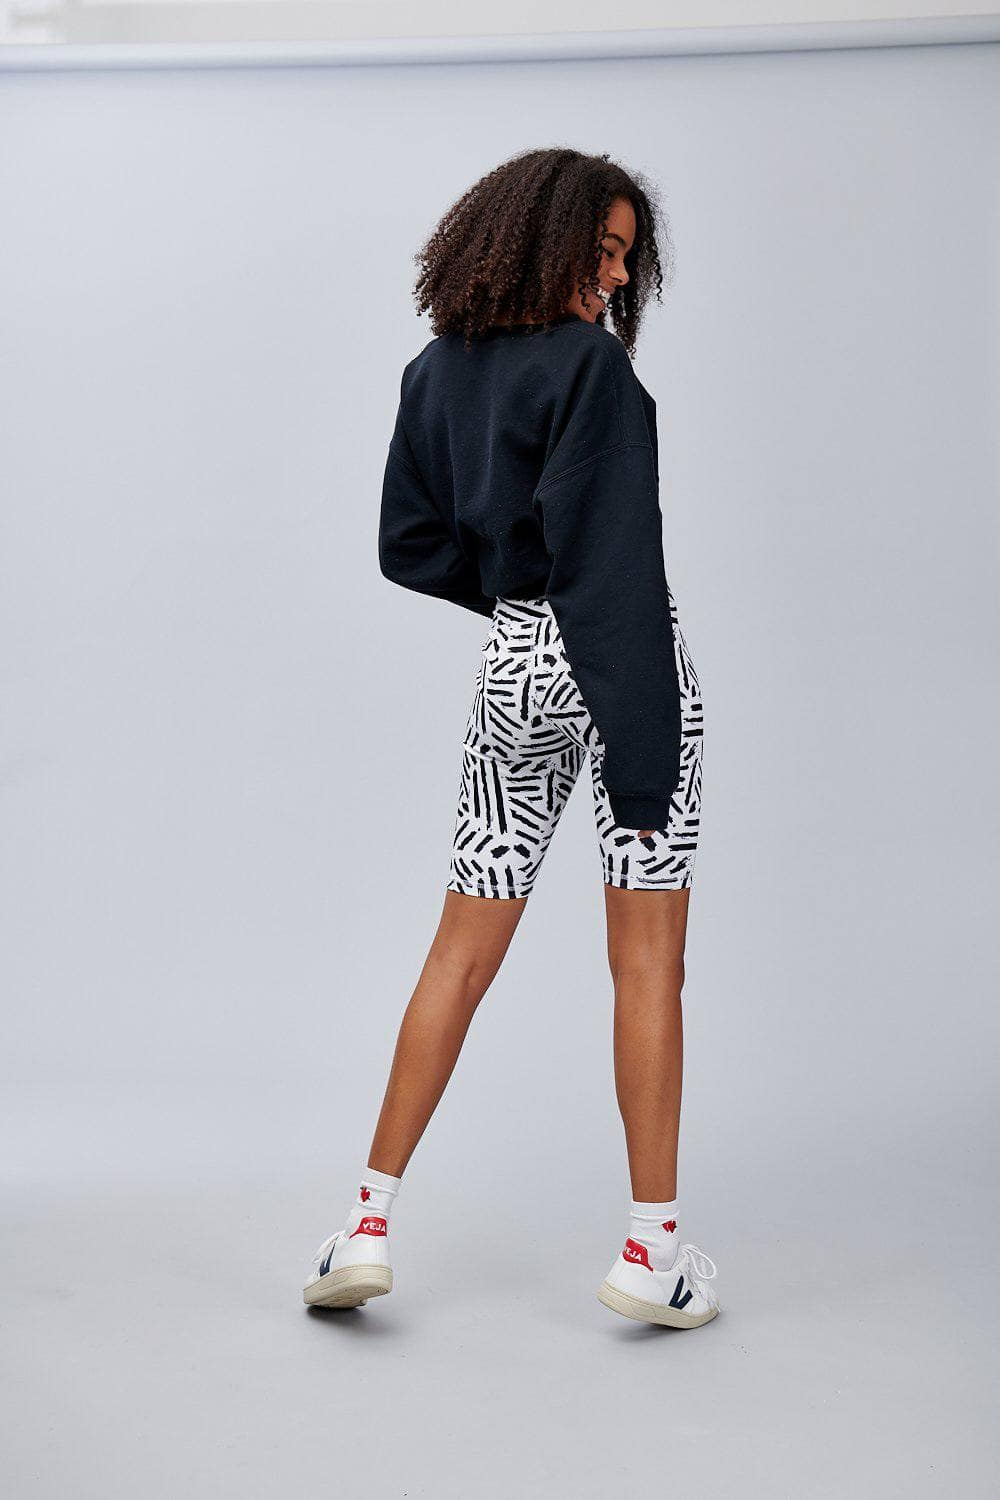 Lucy & Yak shorts 'Dustin' High Waisted Cycling Shorts in Black and White Print